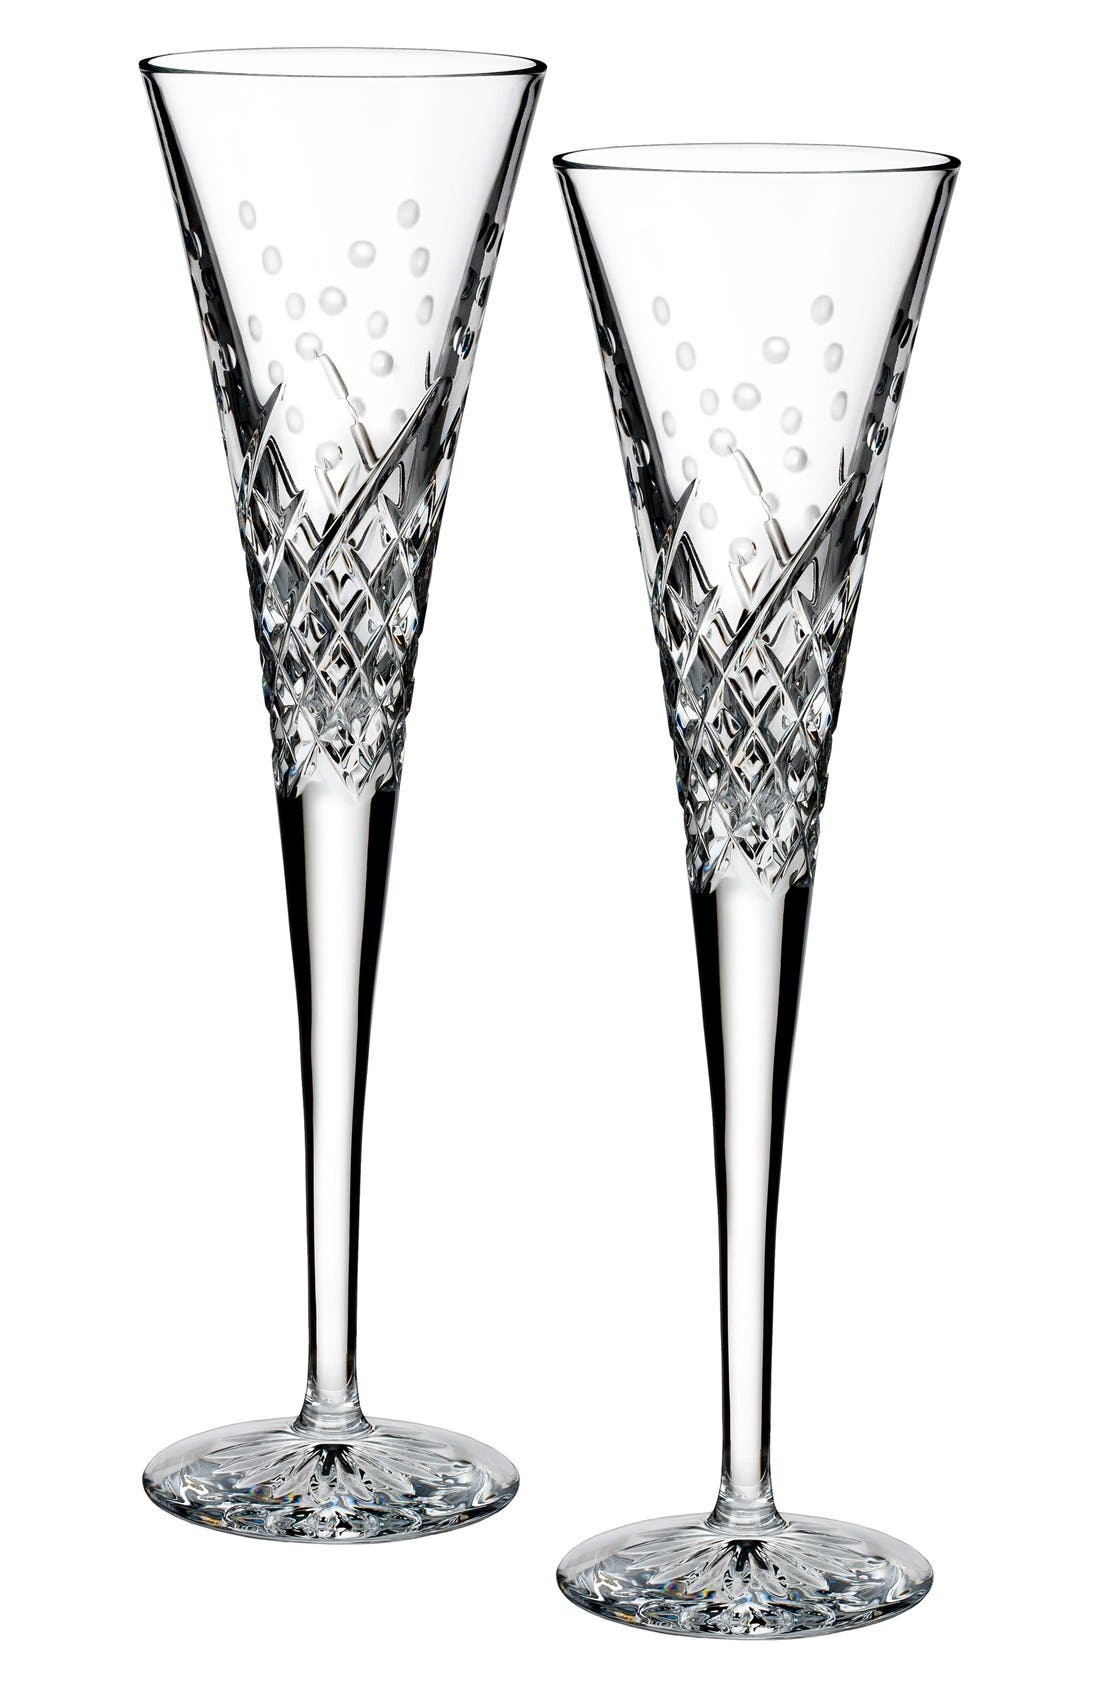 Main Image - Waterford 'Happy Celebrations' Lead Crystal Champagne Flutes (Set of 2)